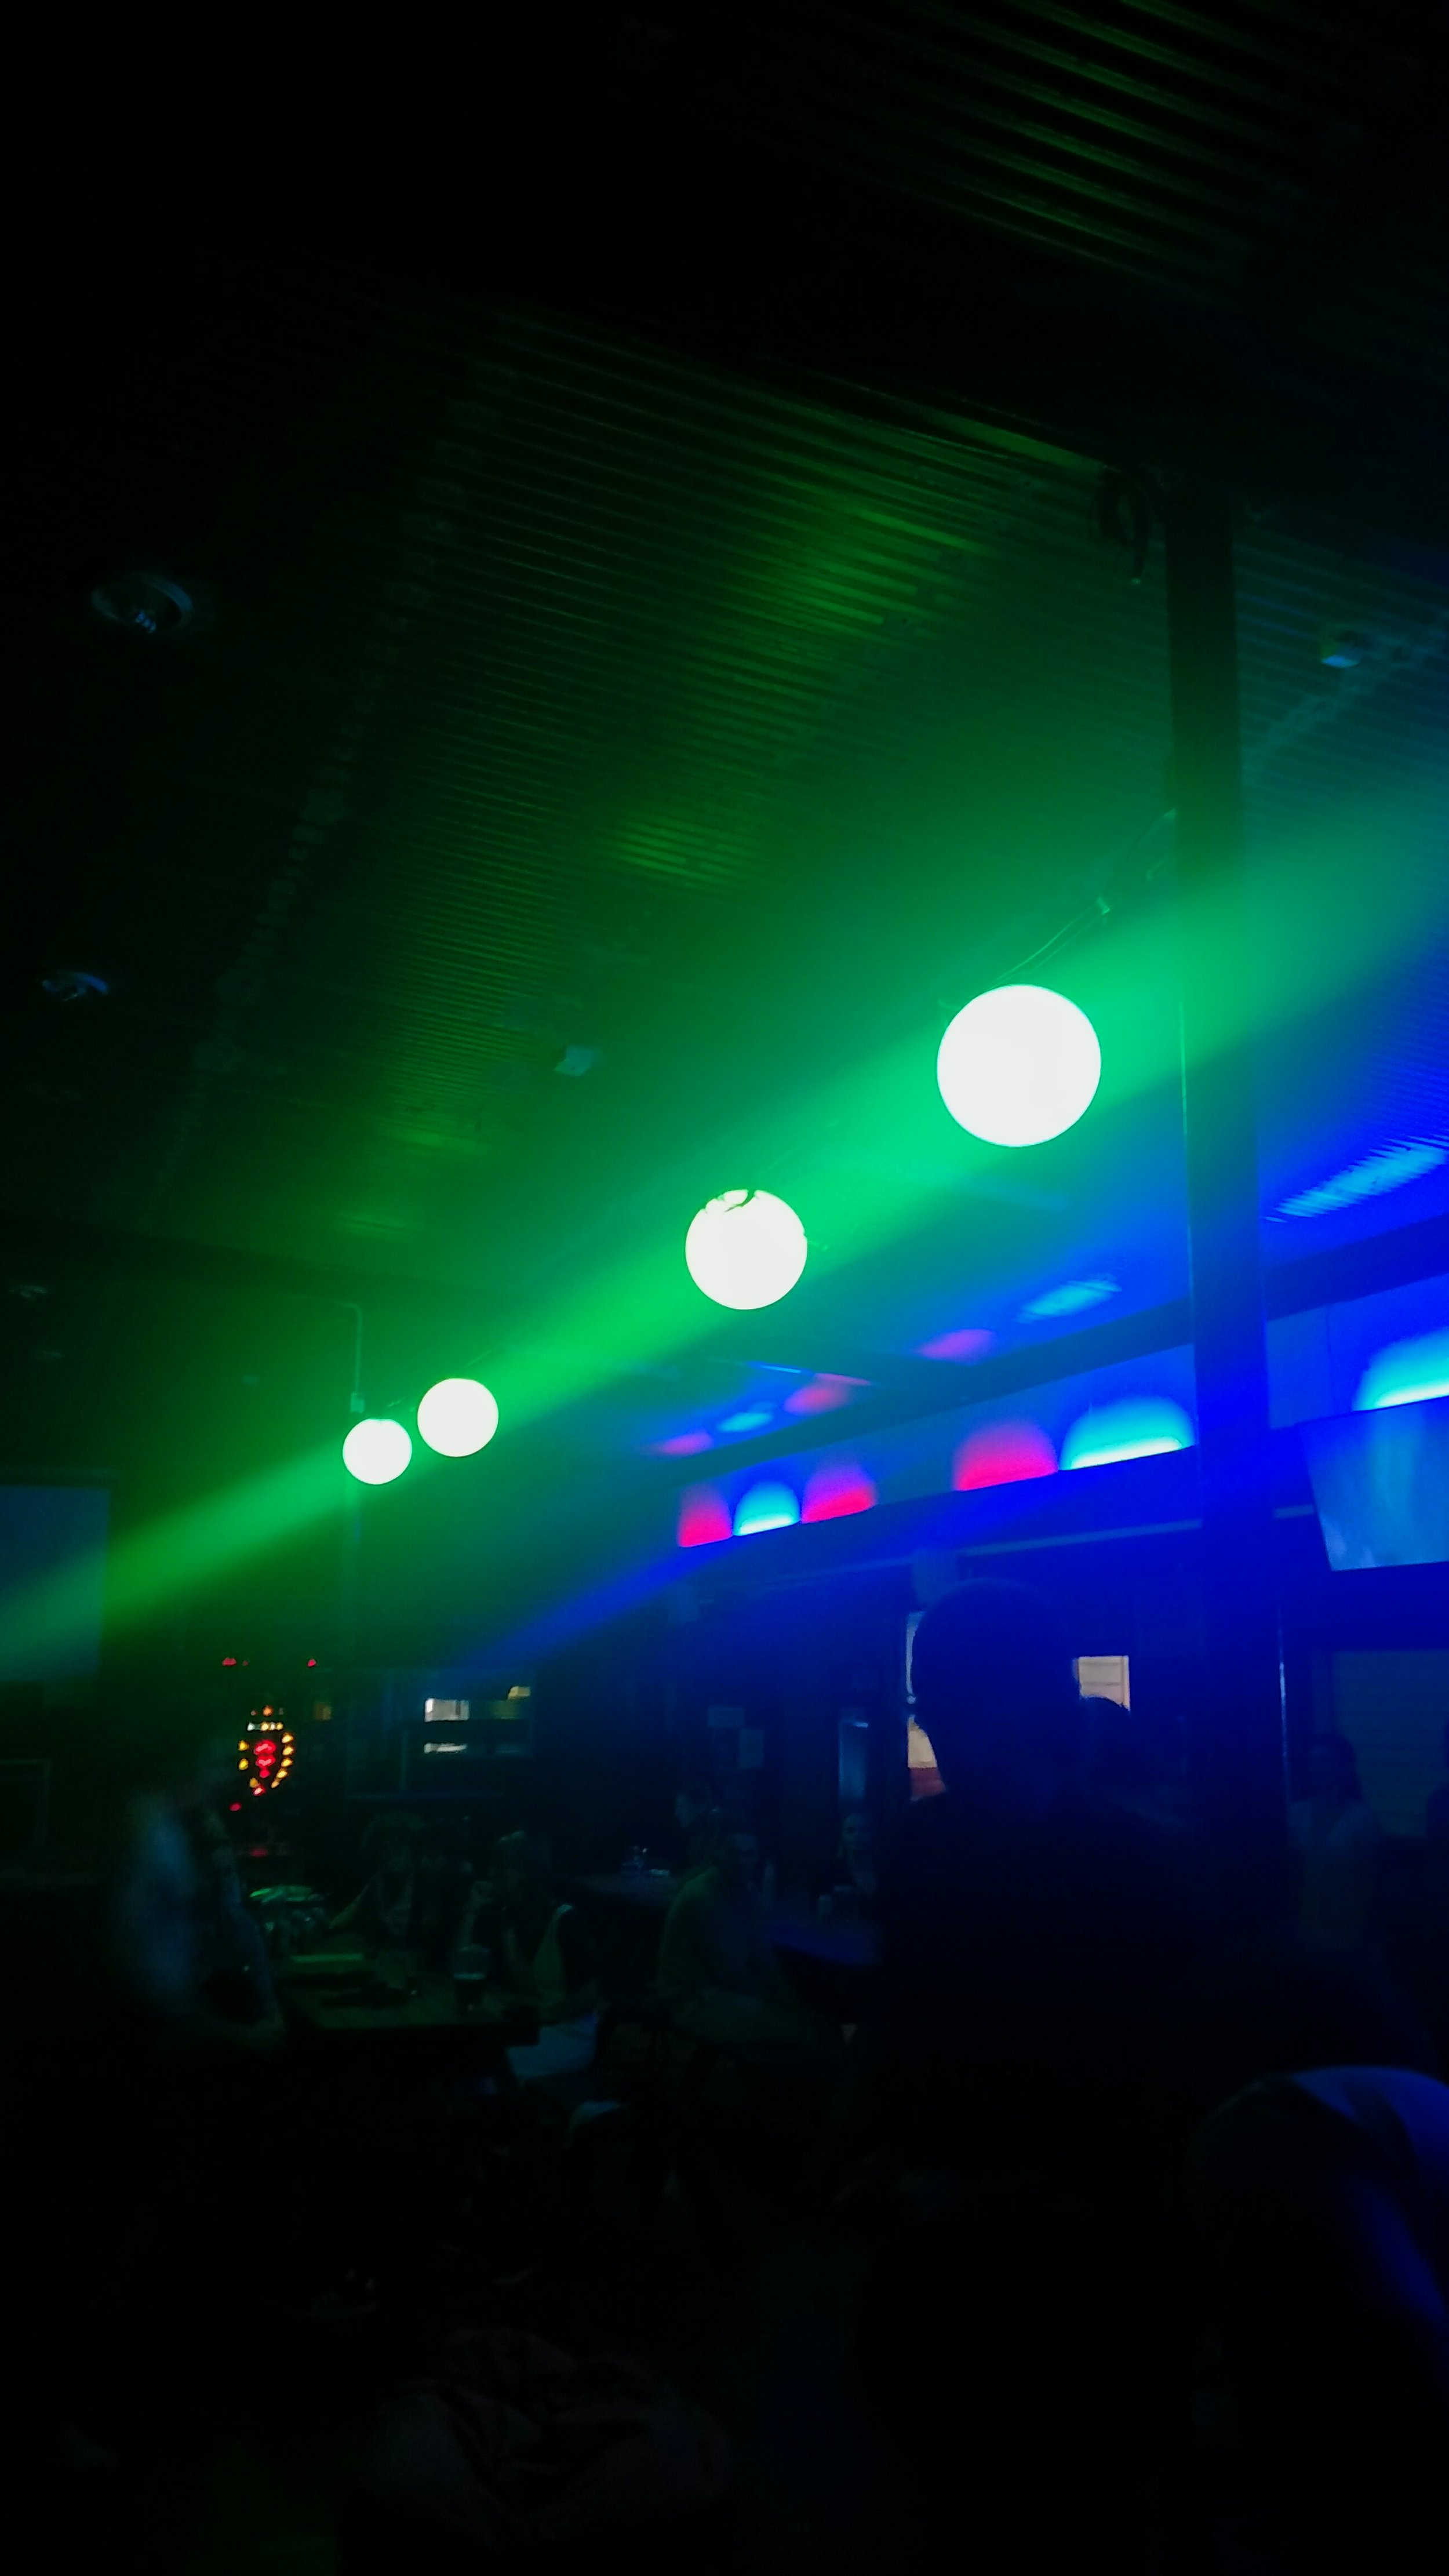 Neon green and blue lights in bar